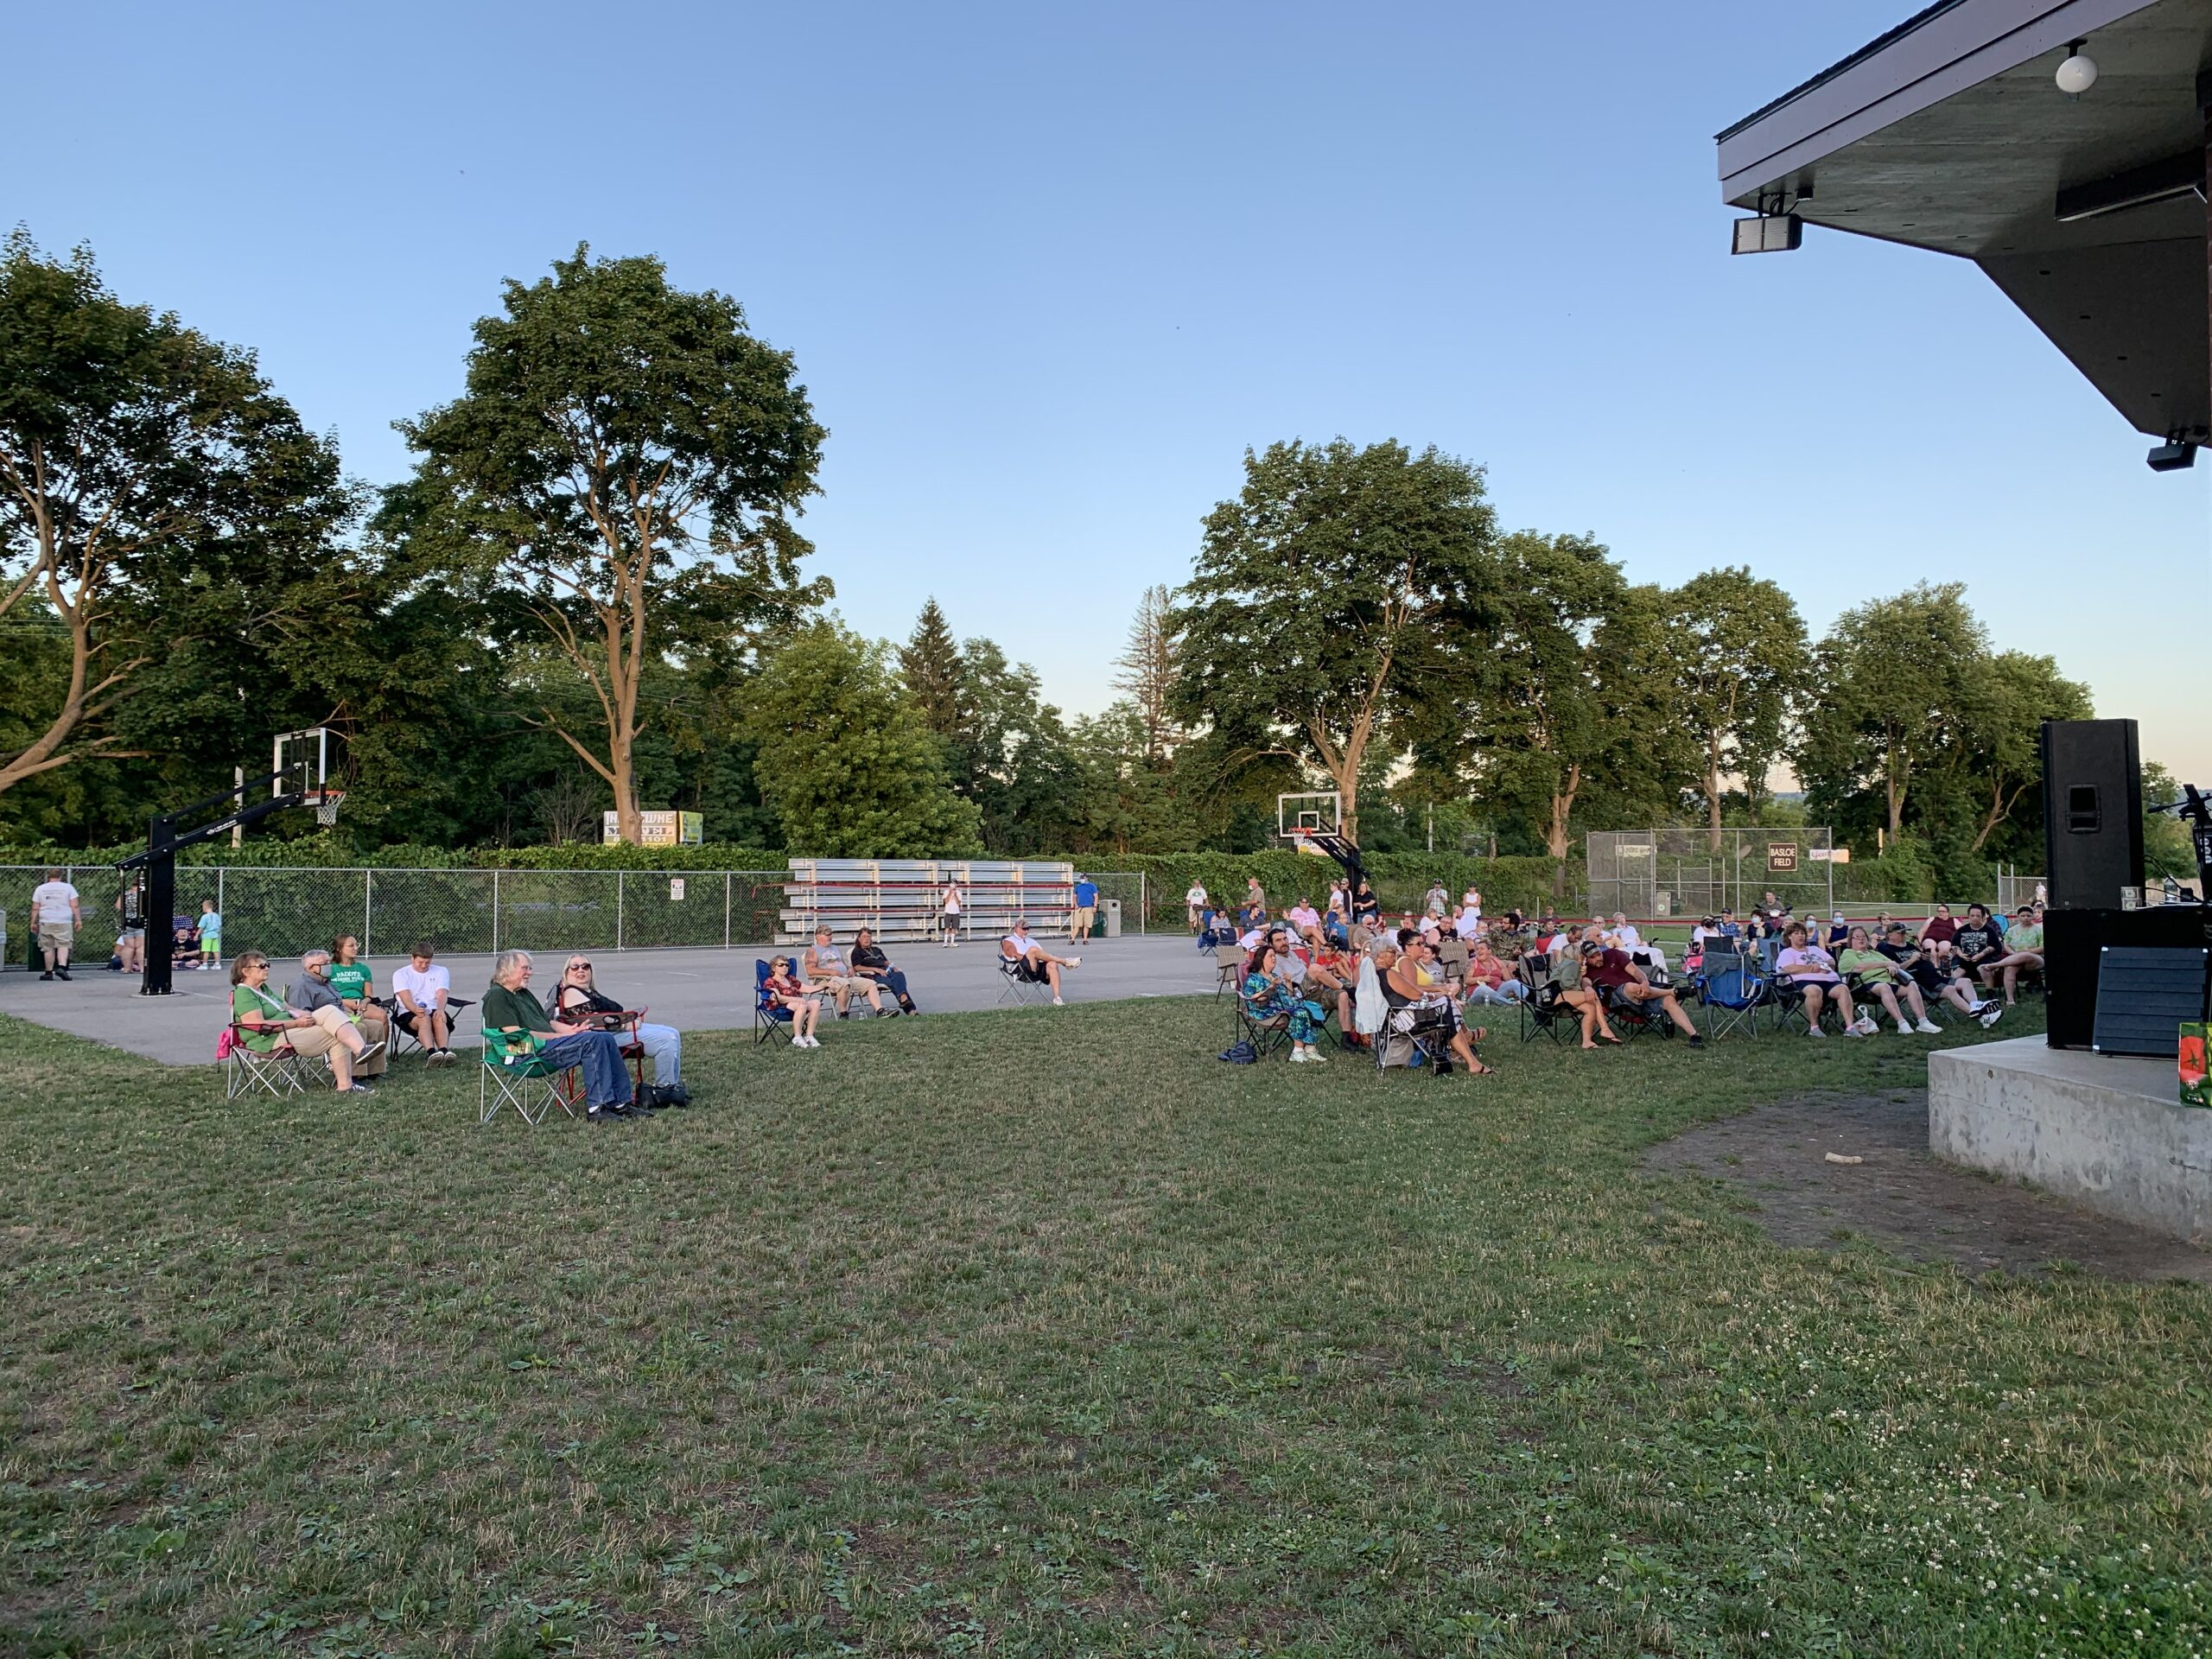 Arc Herkimer to Host Free Summer Concert Series for Community at Arc Park